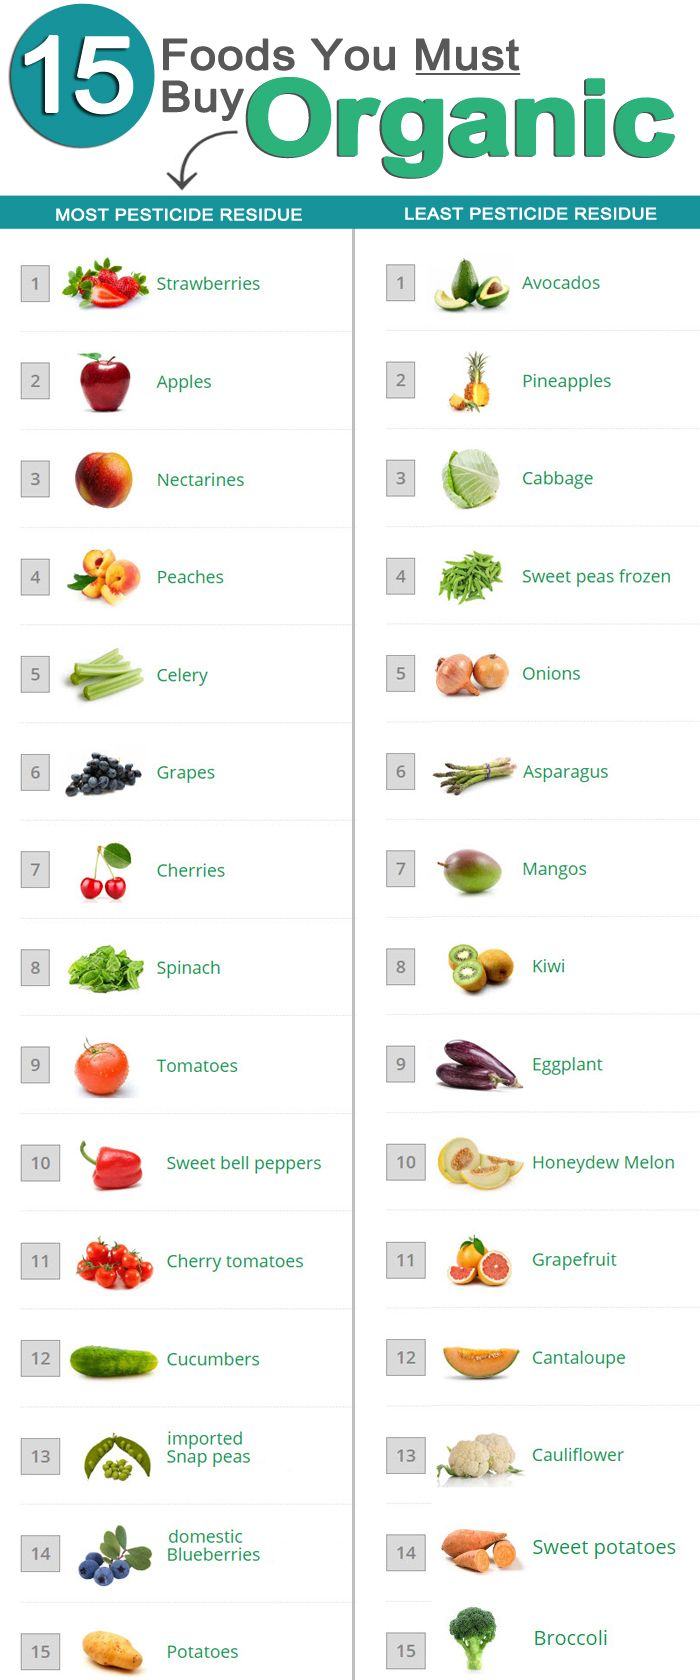 Many of us look forward to summer when a greater variety of fruits and vegetables are available. Unfortunately, some of these nutritious foods are loaded with health-harming pesticides. Here is a guide for avoiding produce that contains high amounts of dangerous chemicals.Food contamination can fall into two categories. One class ...